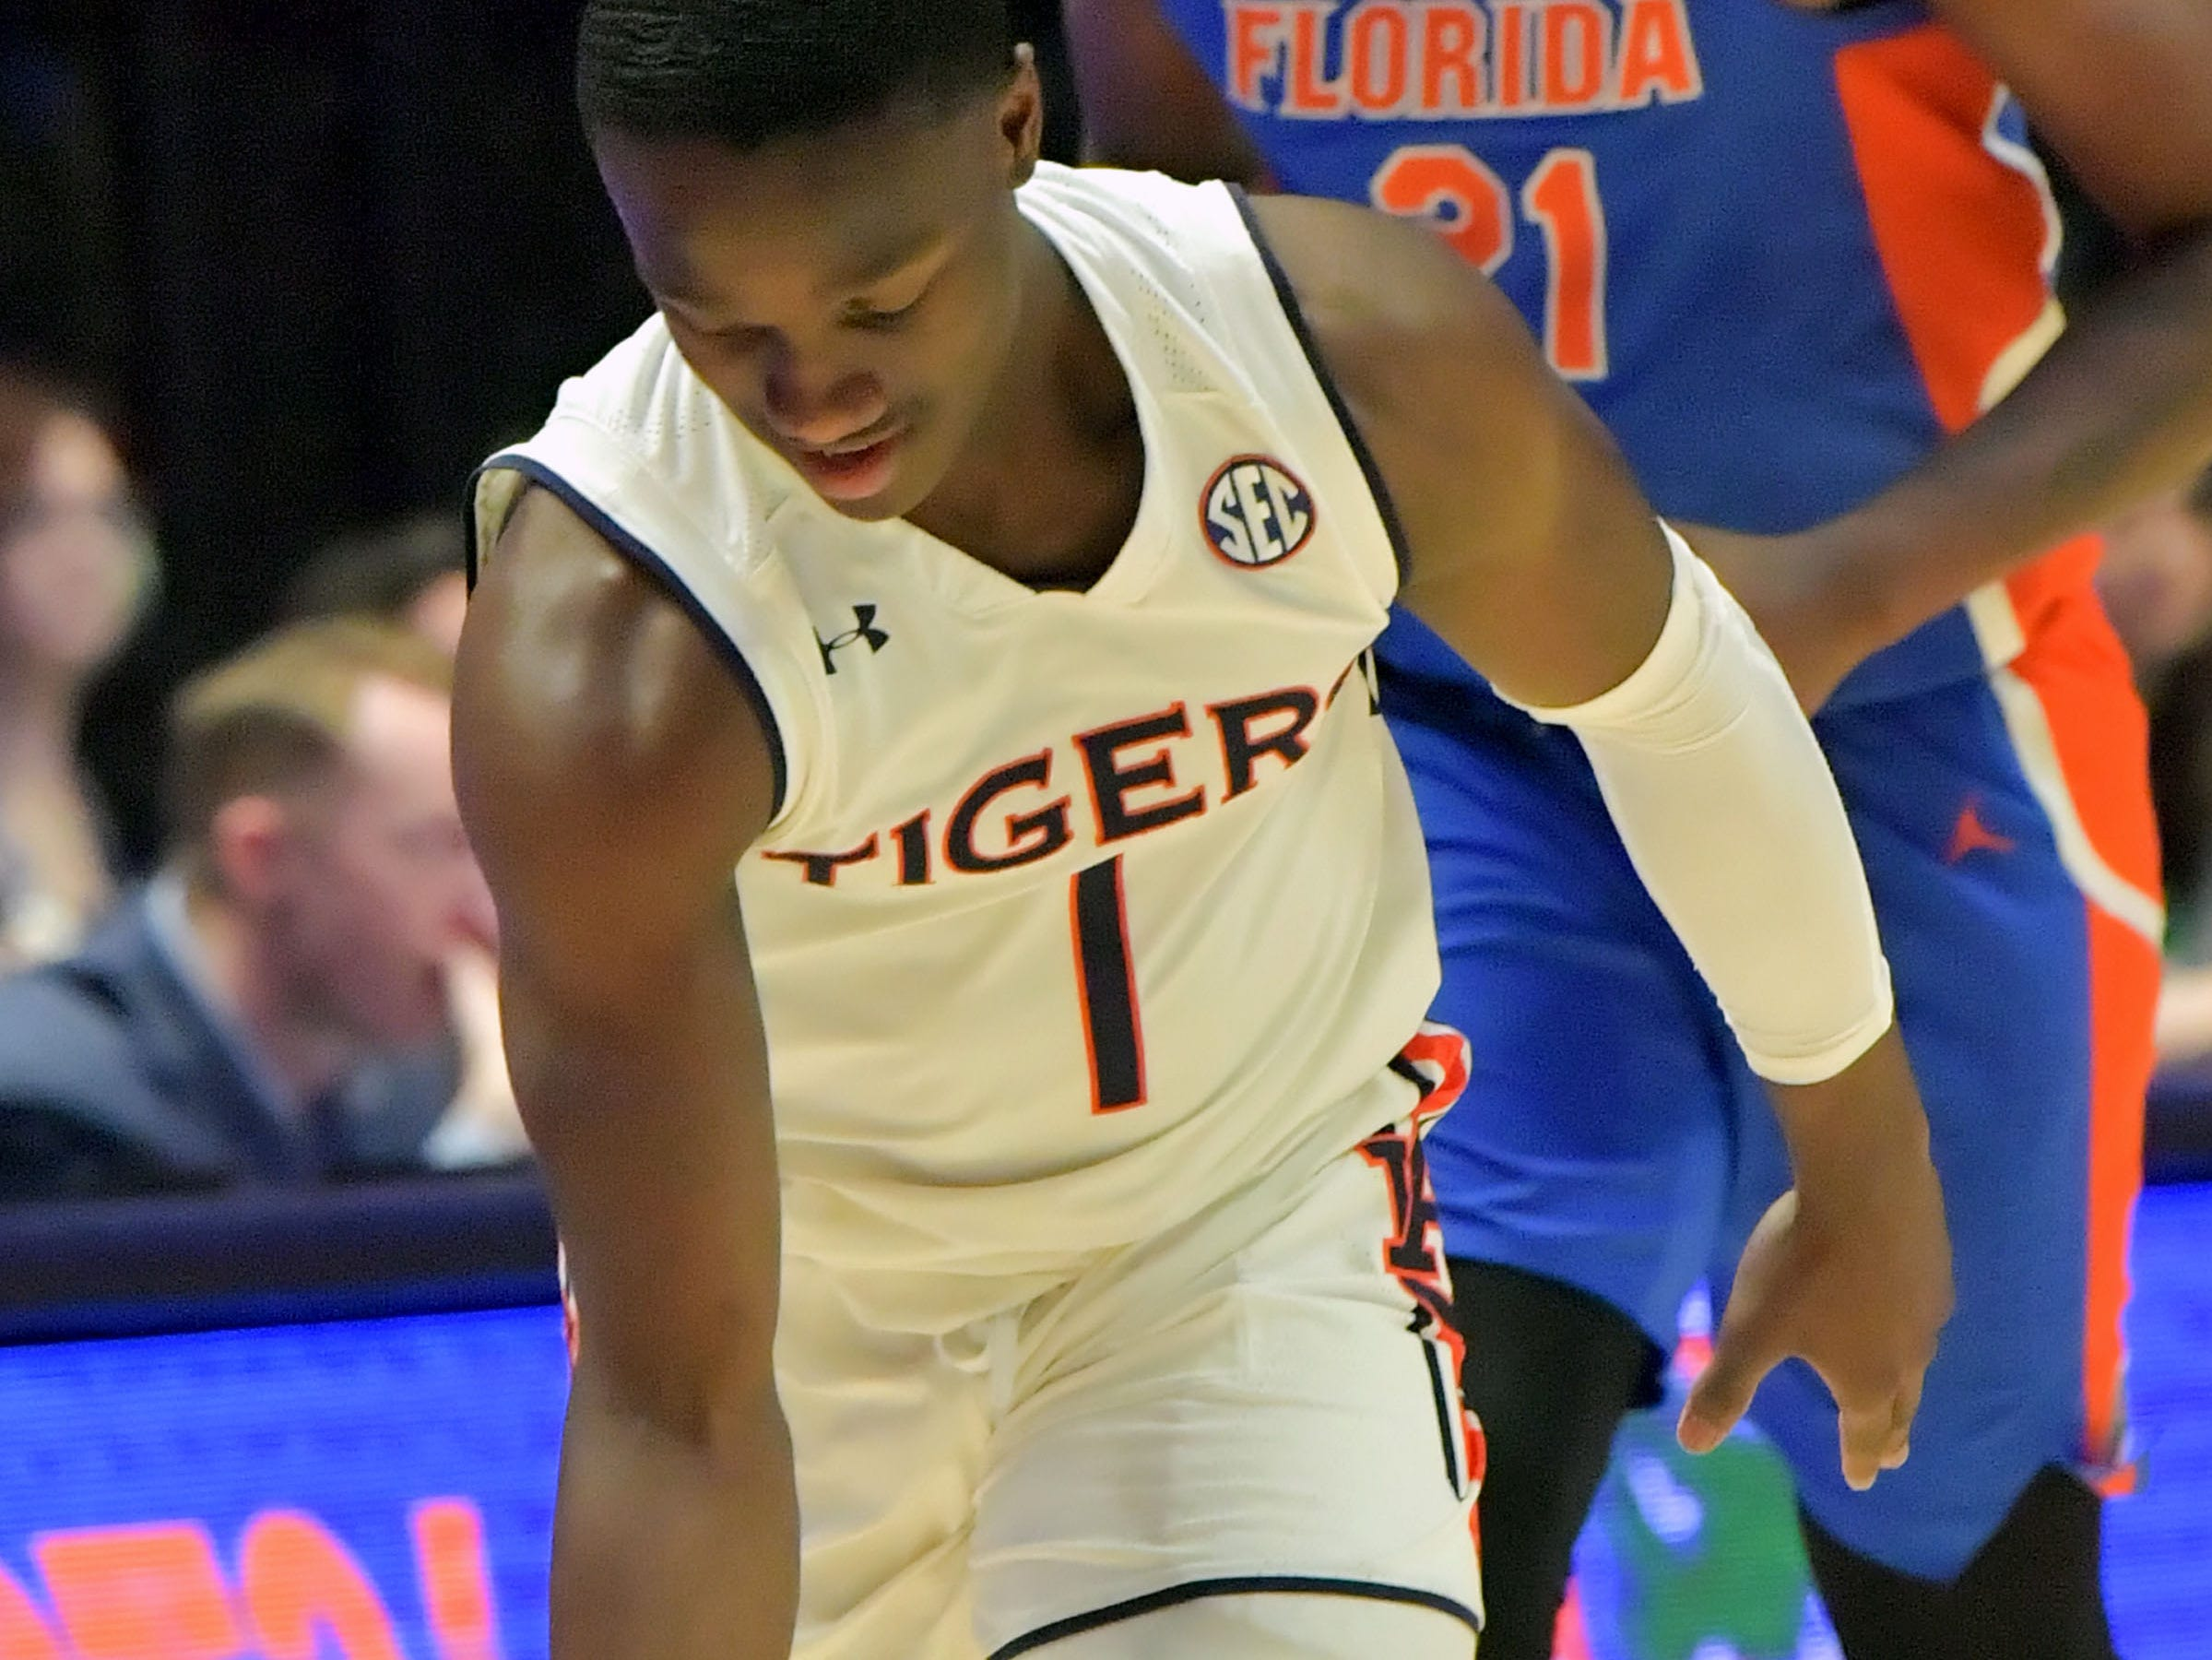 Mar 16, 2019; Nashville, TN, USA; Auburn Tigers guard Jared Harper (1) reacts after scoring a three pint shot against the Florida Gators during the first half of game eleven in the SEC conference tournament at Bridgestone Arena. Mandatory Credit: Jim Brown-USA TODAY Sports